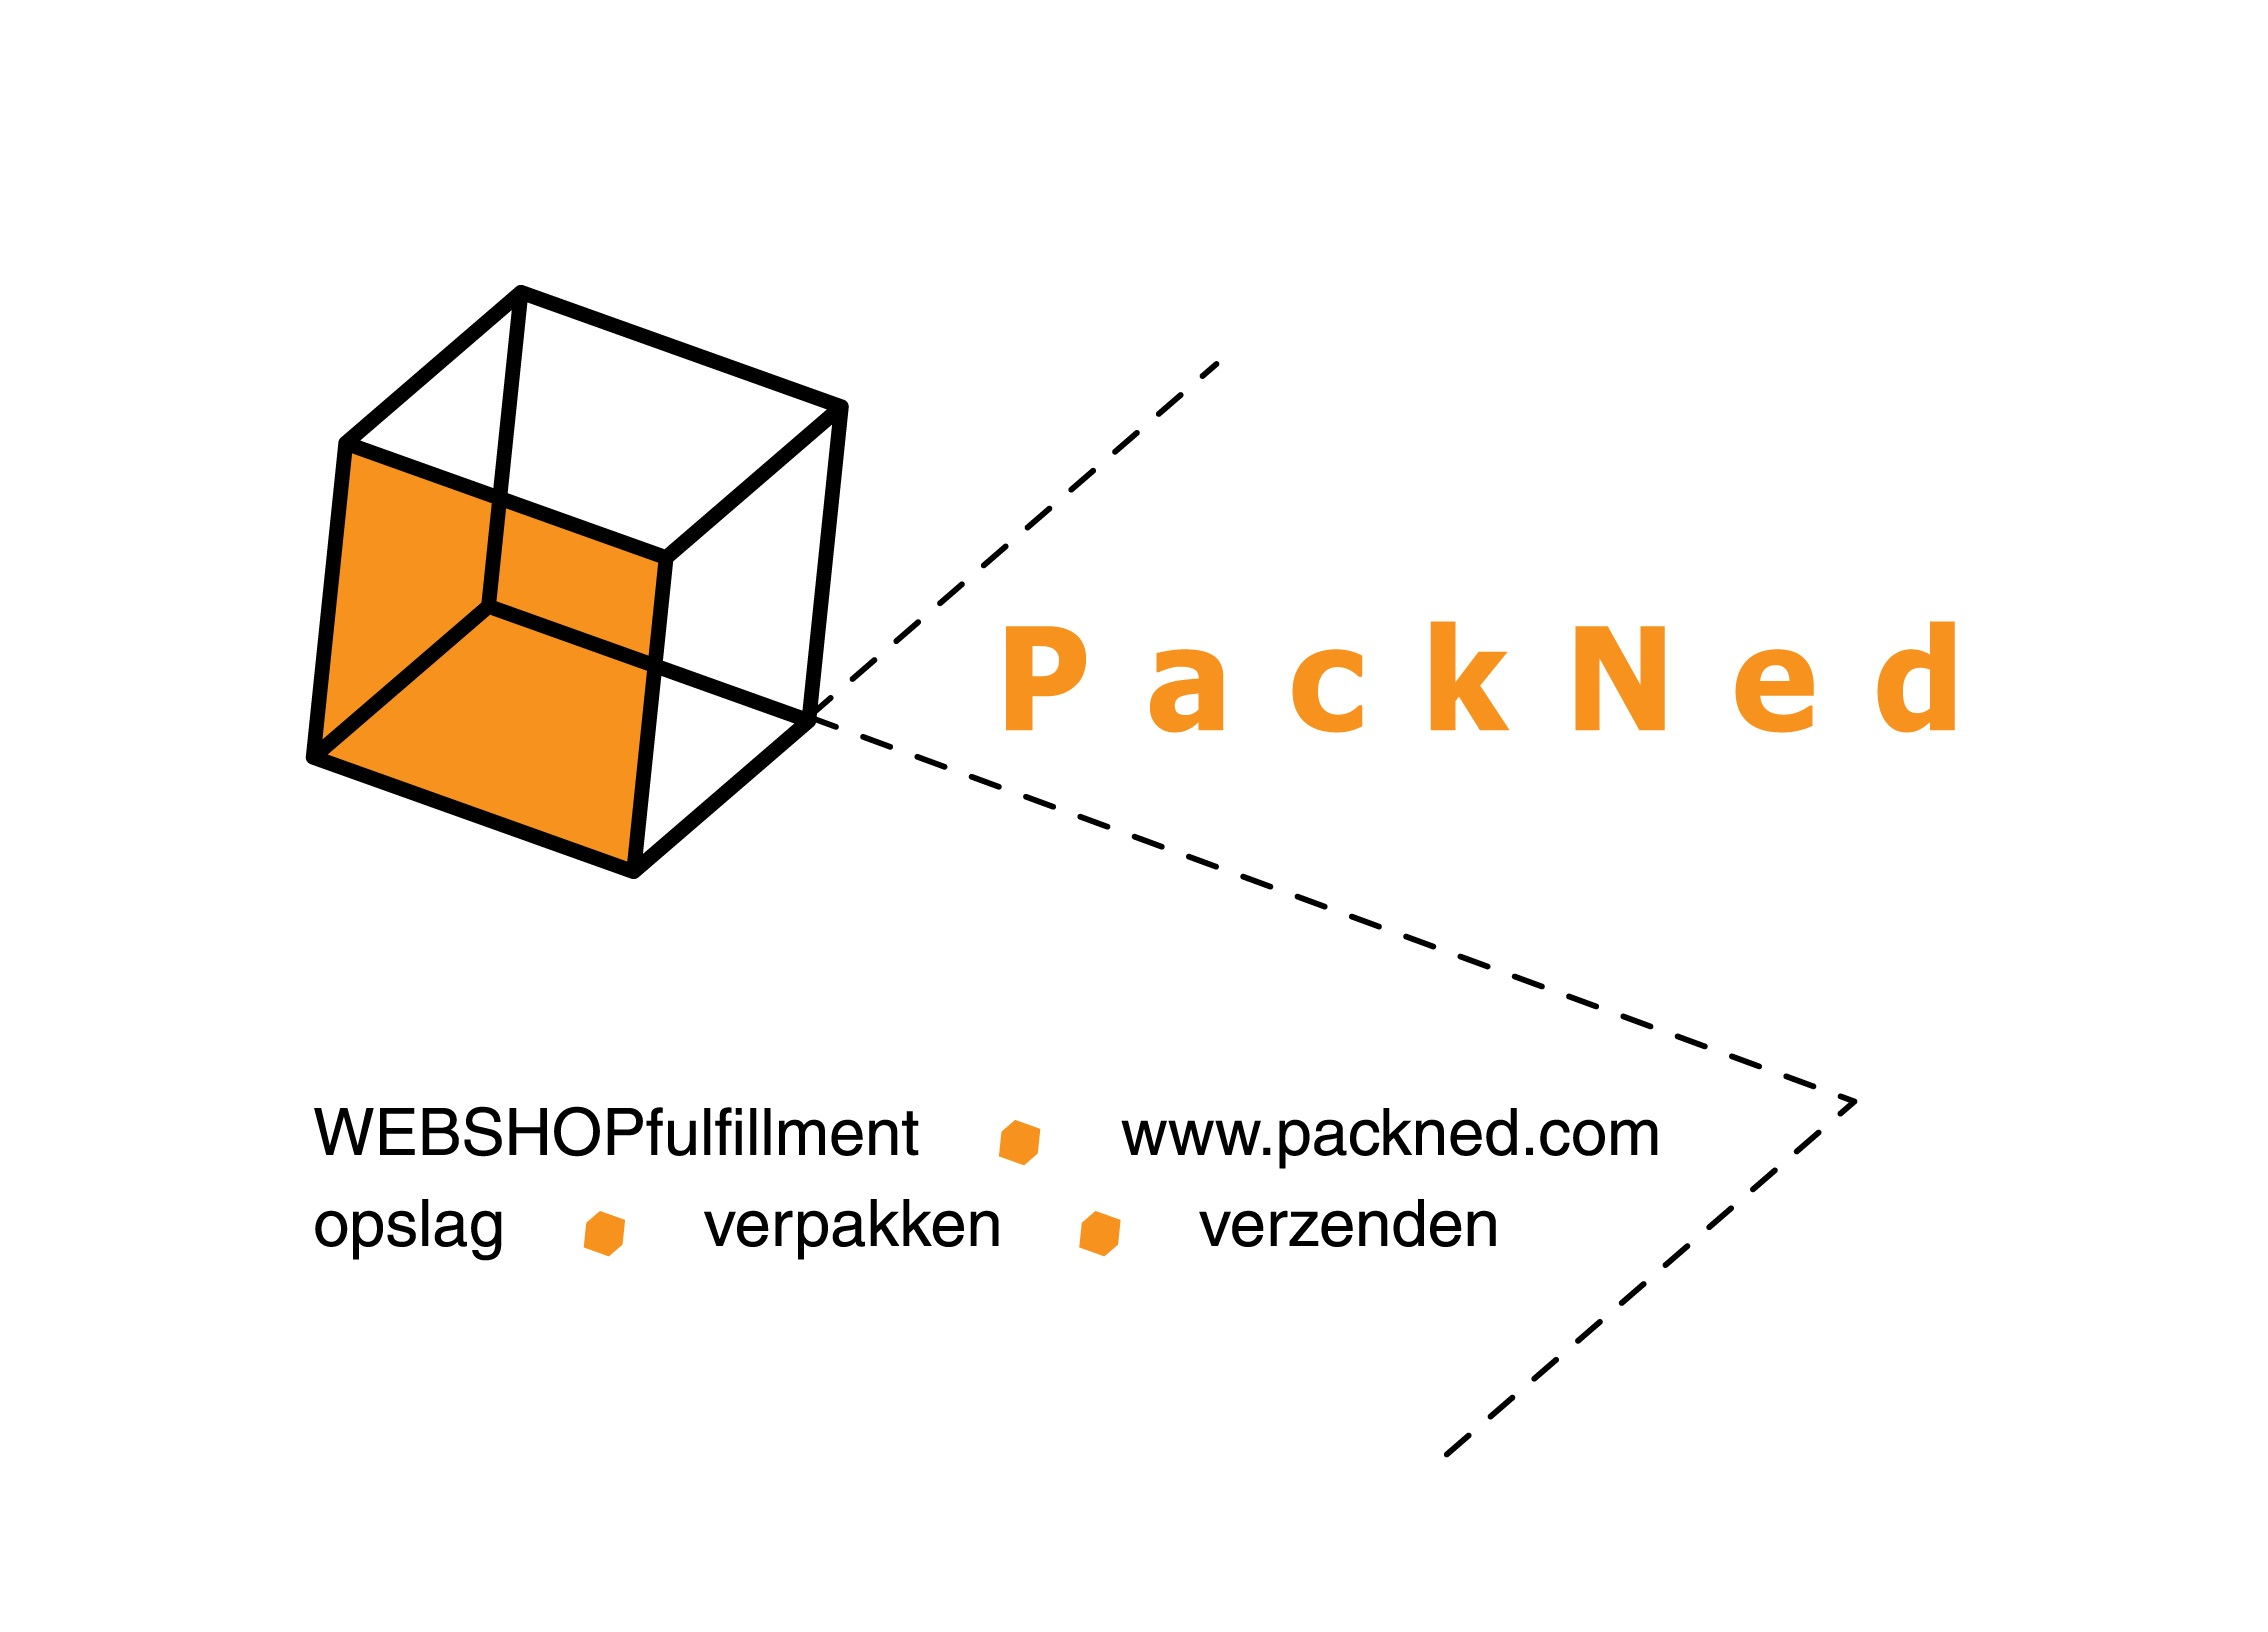 PackNed Webshop Fulfilment